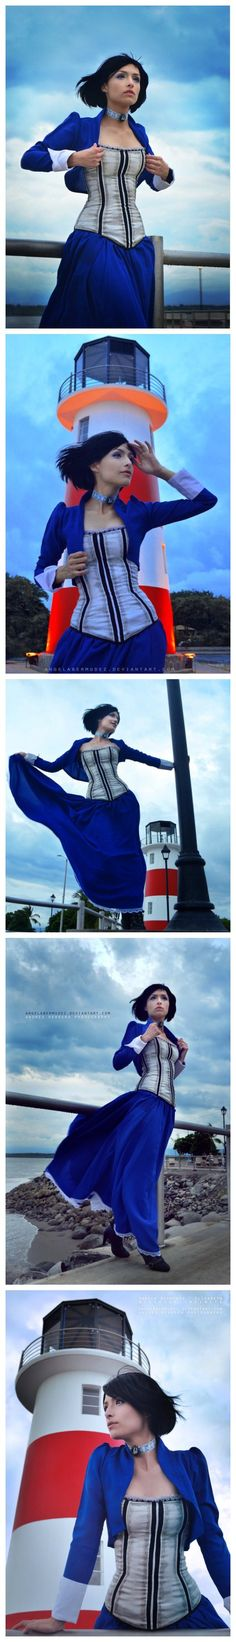 BioShock Infinite Elizabeth,she doesn't really look like her though. When my hair was shorter I was told I looked like her.